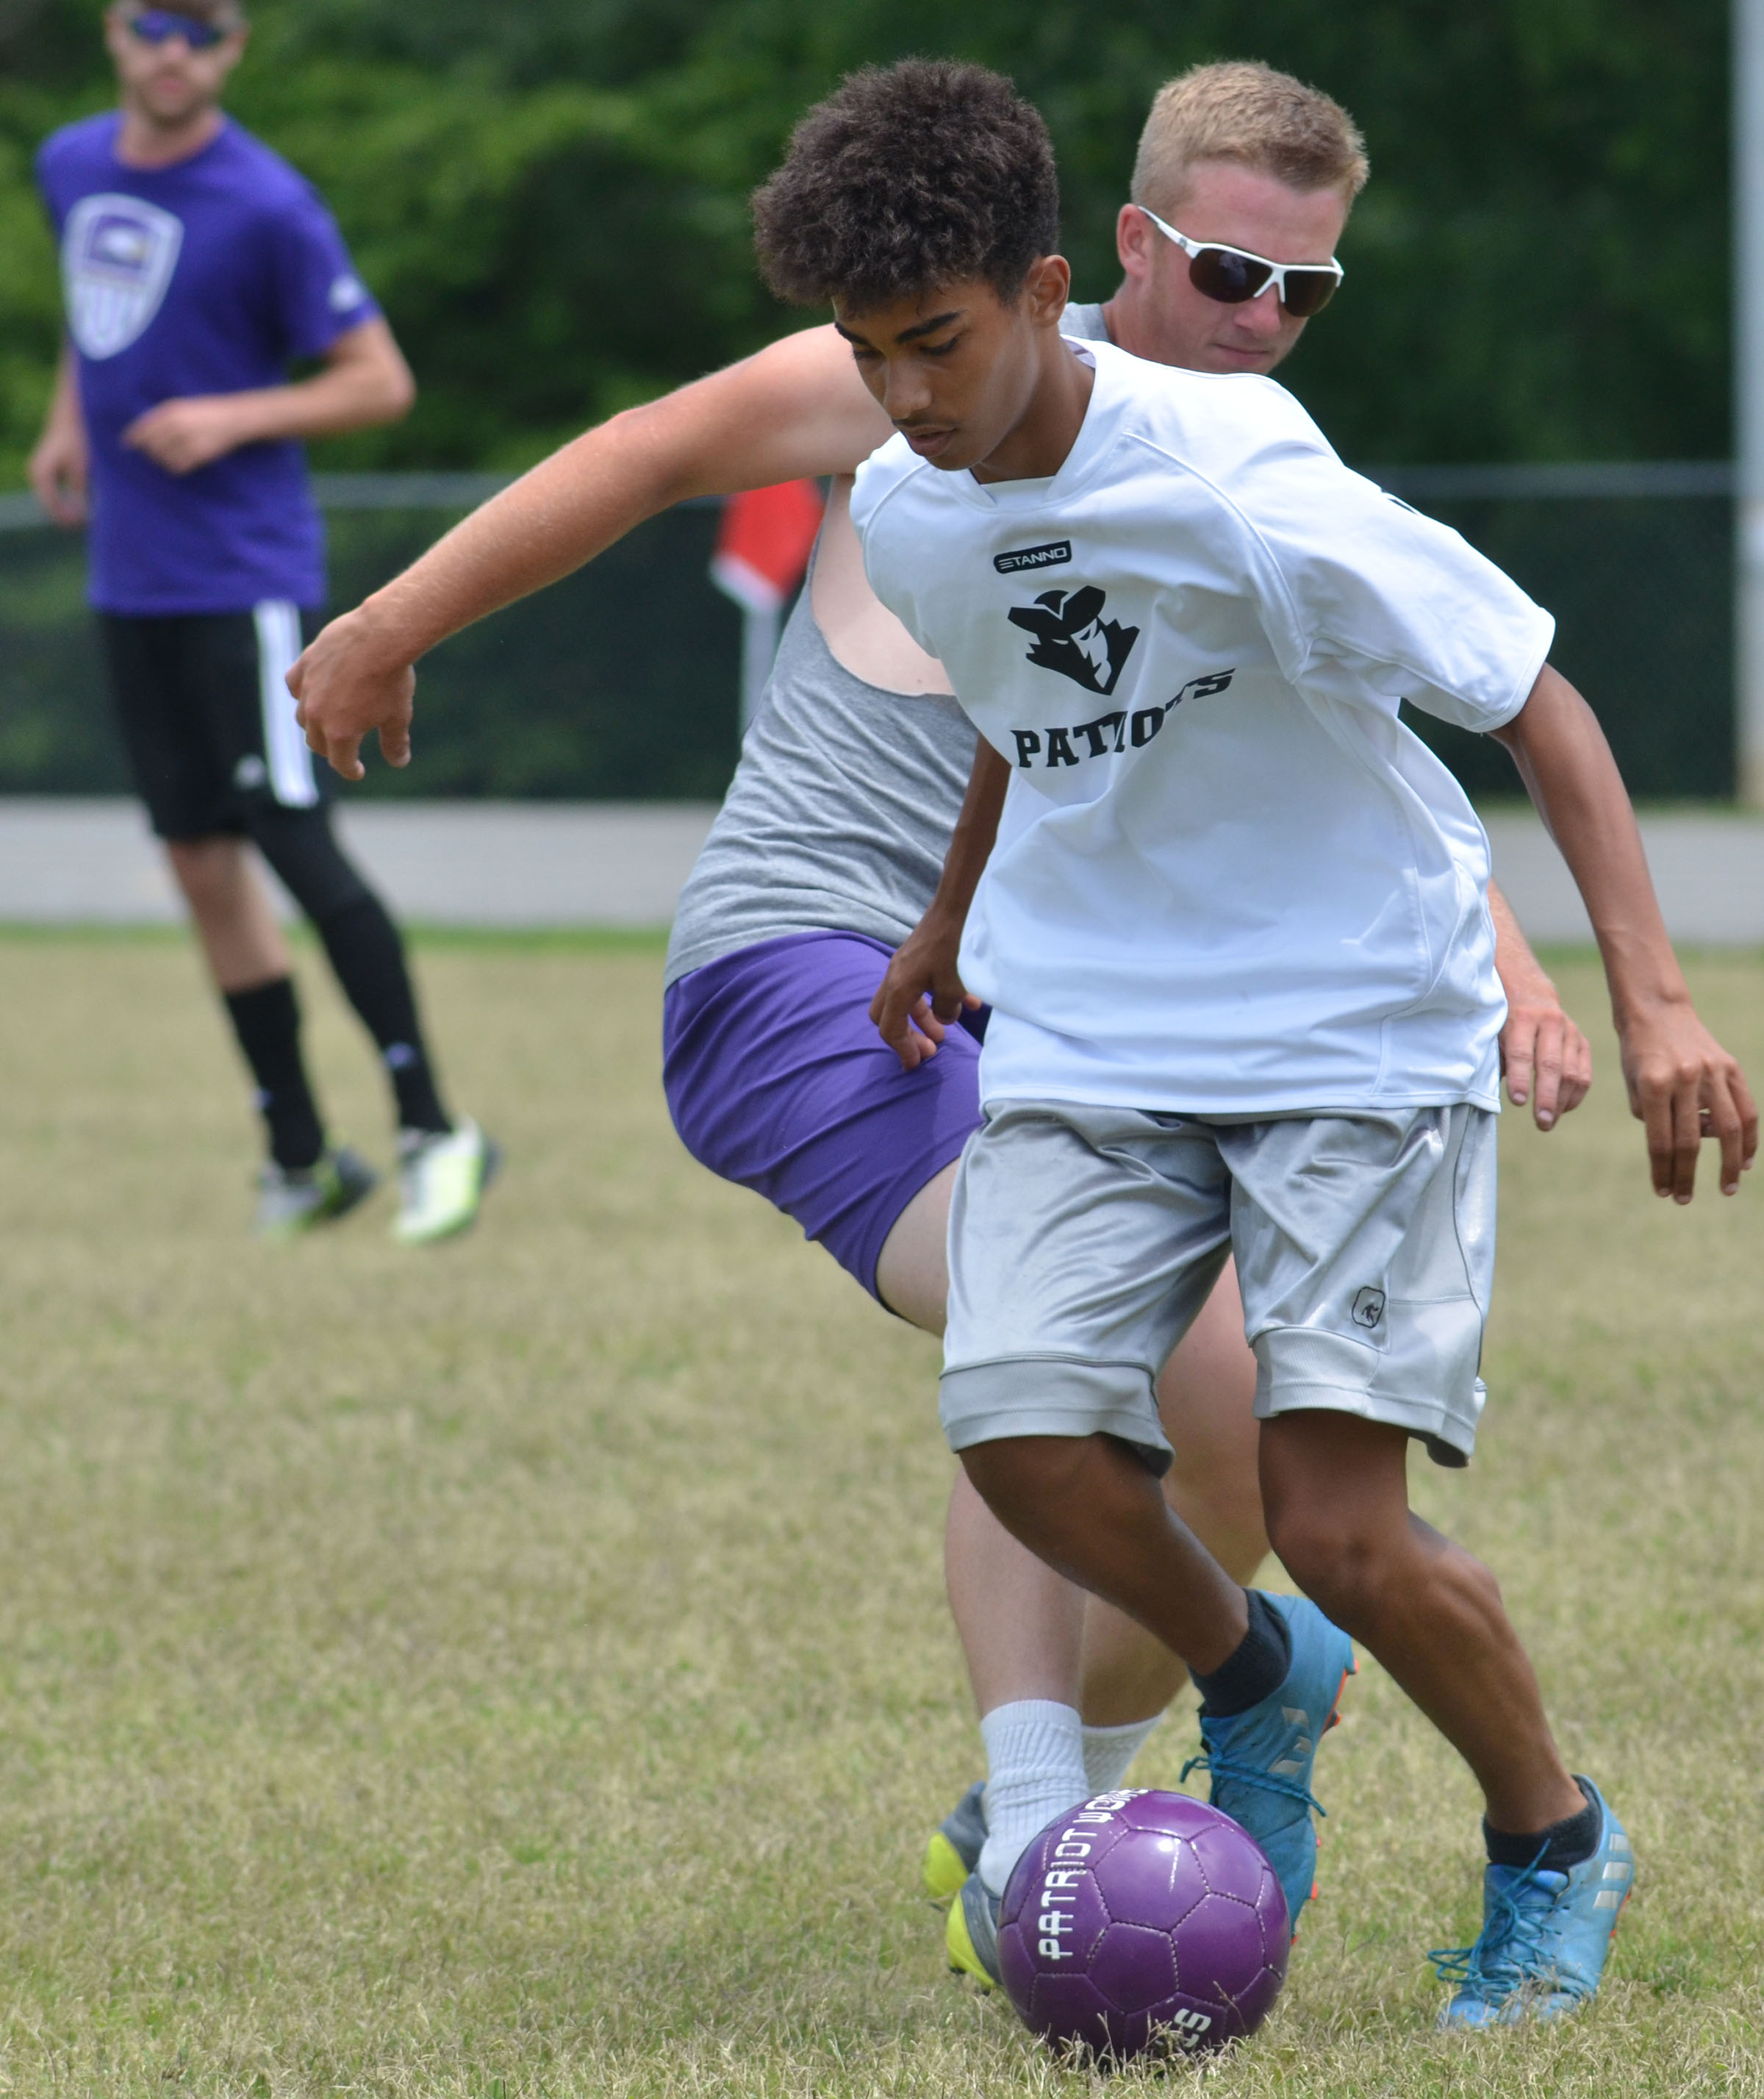 CHS sophomore David Silva runs as alumni player Logan Dial tries to steal the ball.